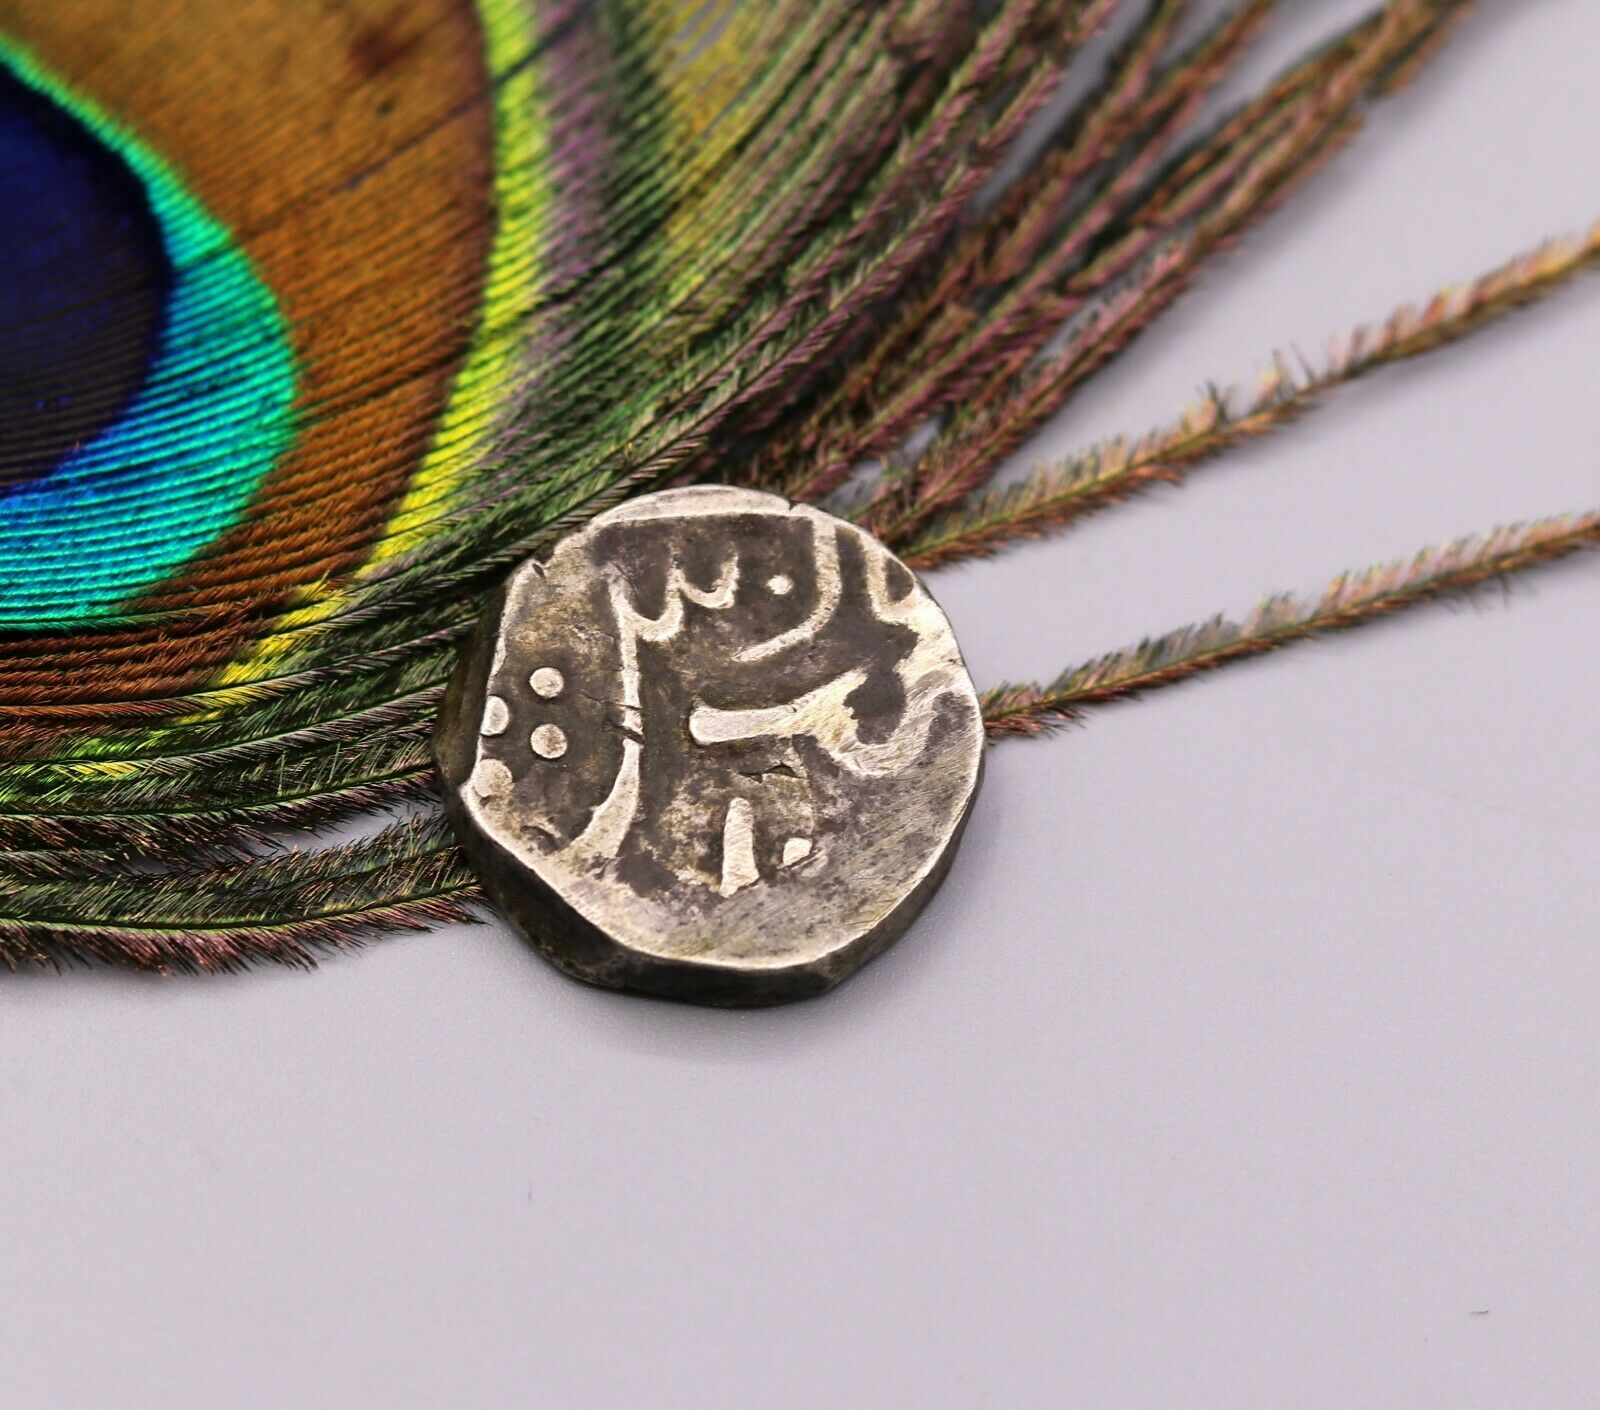 HANDMADE SOLID SILVER COIN GINNY USED AS CURRENCY MAKING ANTIQUE JEWELRY cn08